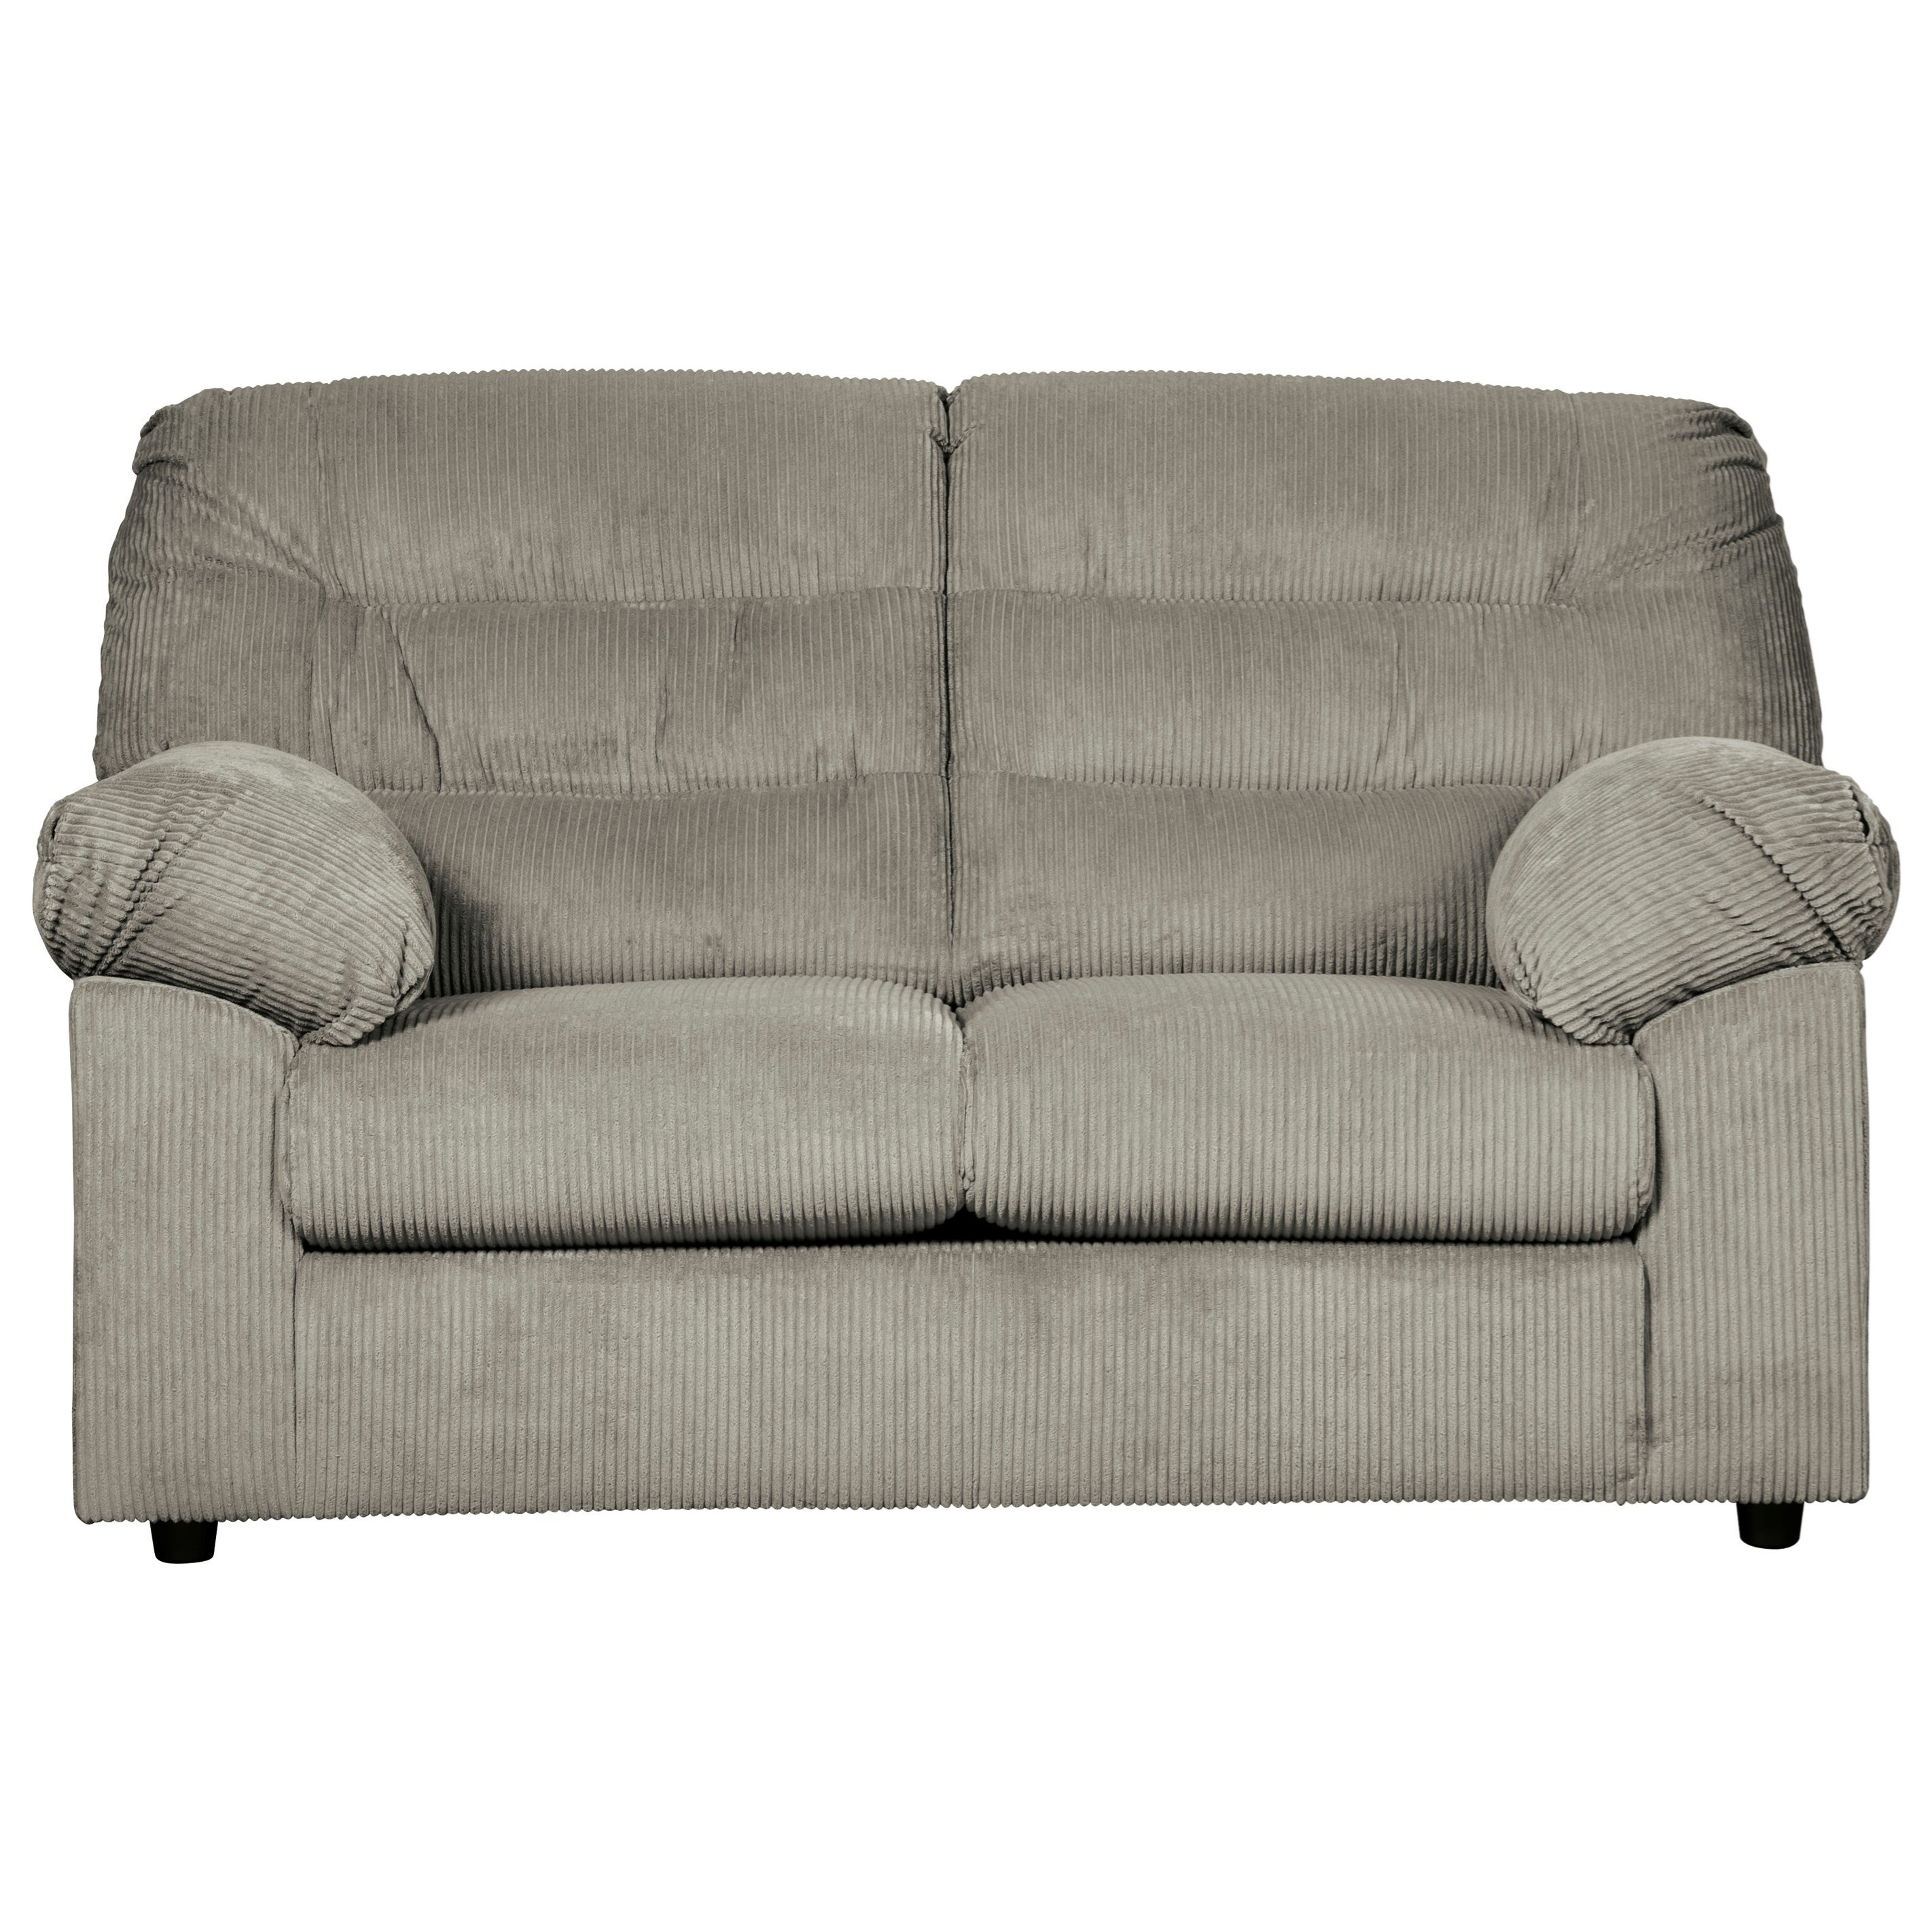 Signature Design By Ashley Gosnell Casual Loveseat With Corduroy Fabric Rife 39 S Home Furniture